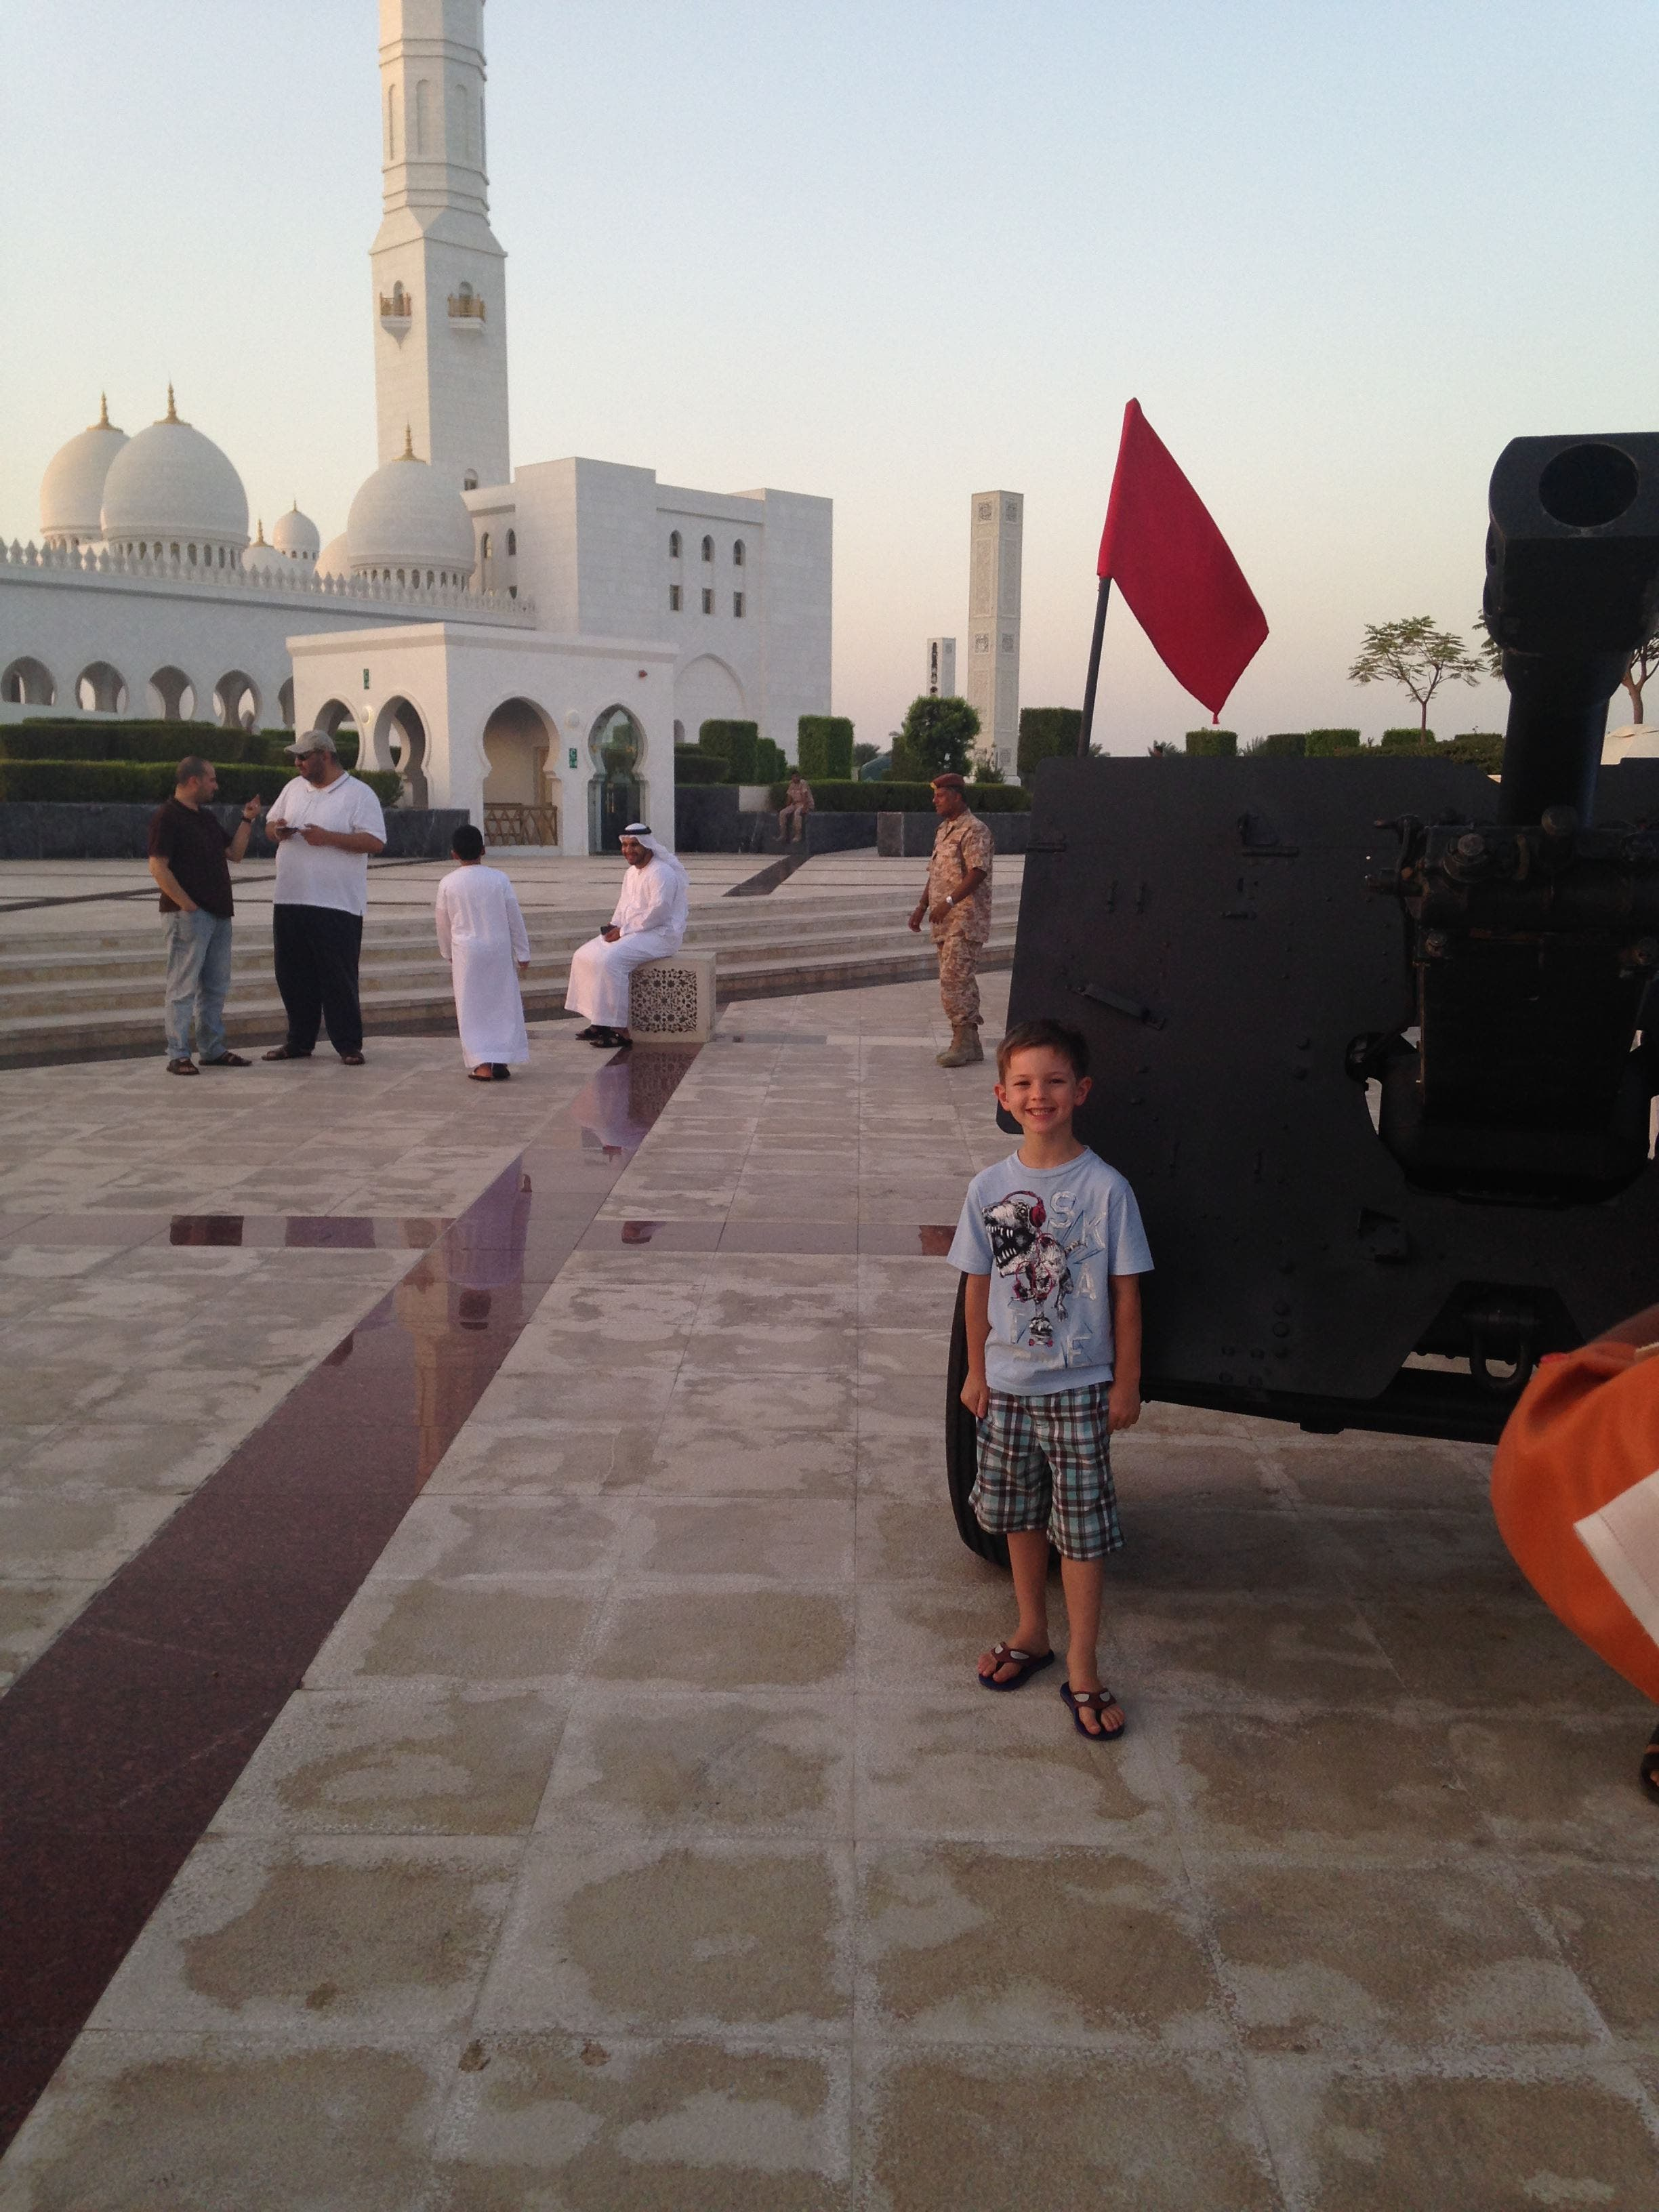 Louise Shephard's son, Harry, is now 9 years old. Harry feels visiting the mosque in Ramadan gives him a sense of togetherness. (Supplied)